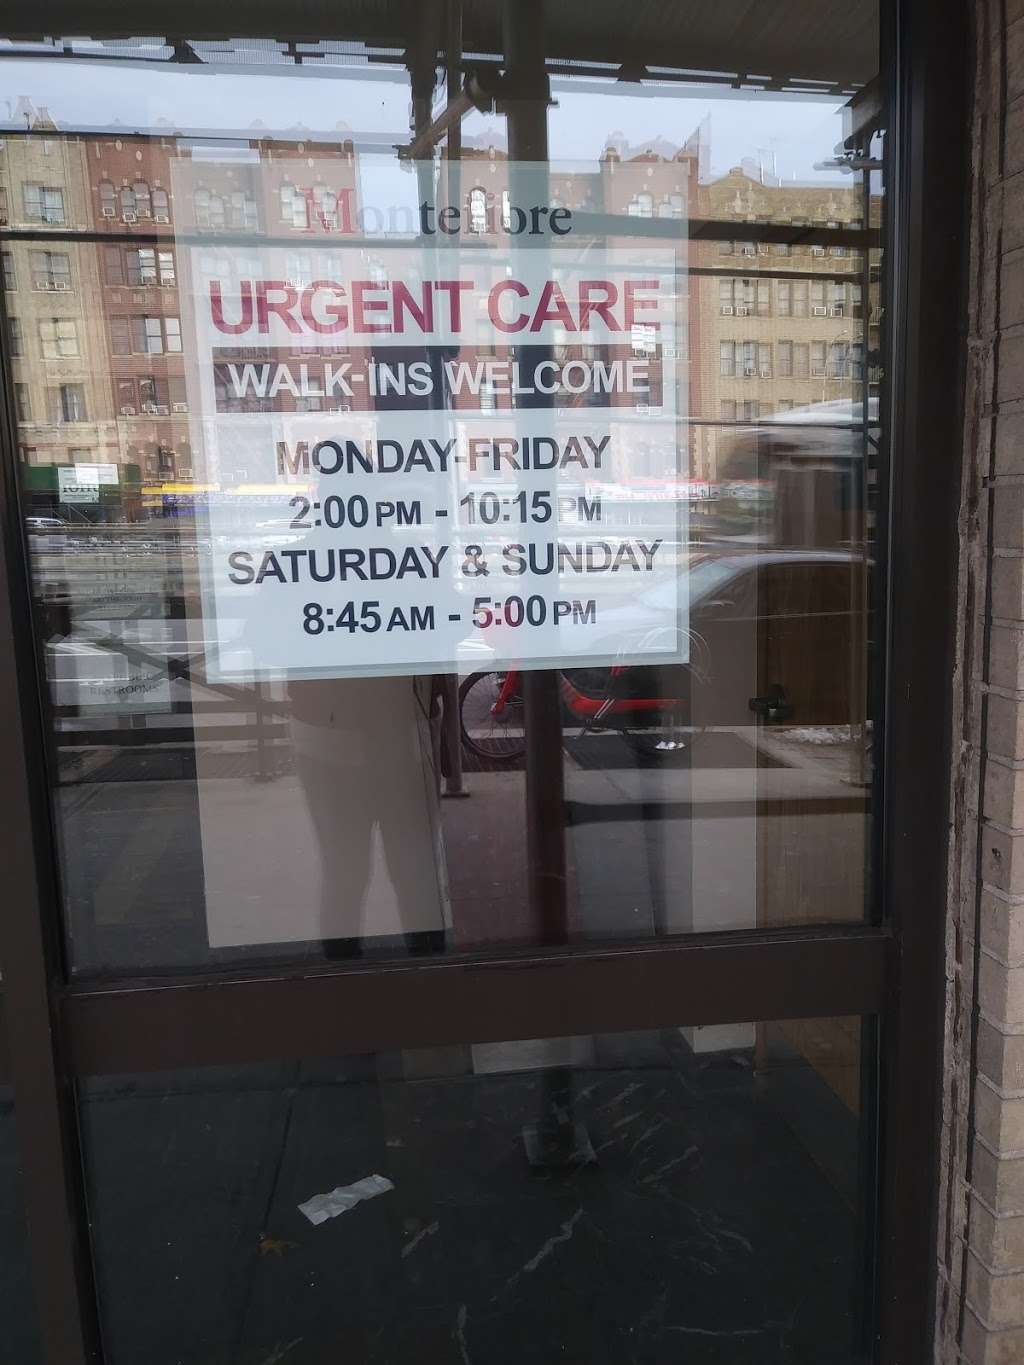 Urgent Care Grand Concourse Montefiore Medical Group - health  | Photo 2 of 2 | Address: 2532 Grand Concourse, The Bronx, NY 10458, USA | Phone: (718) 960-1569